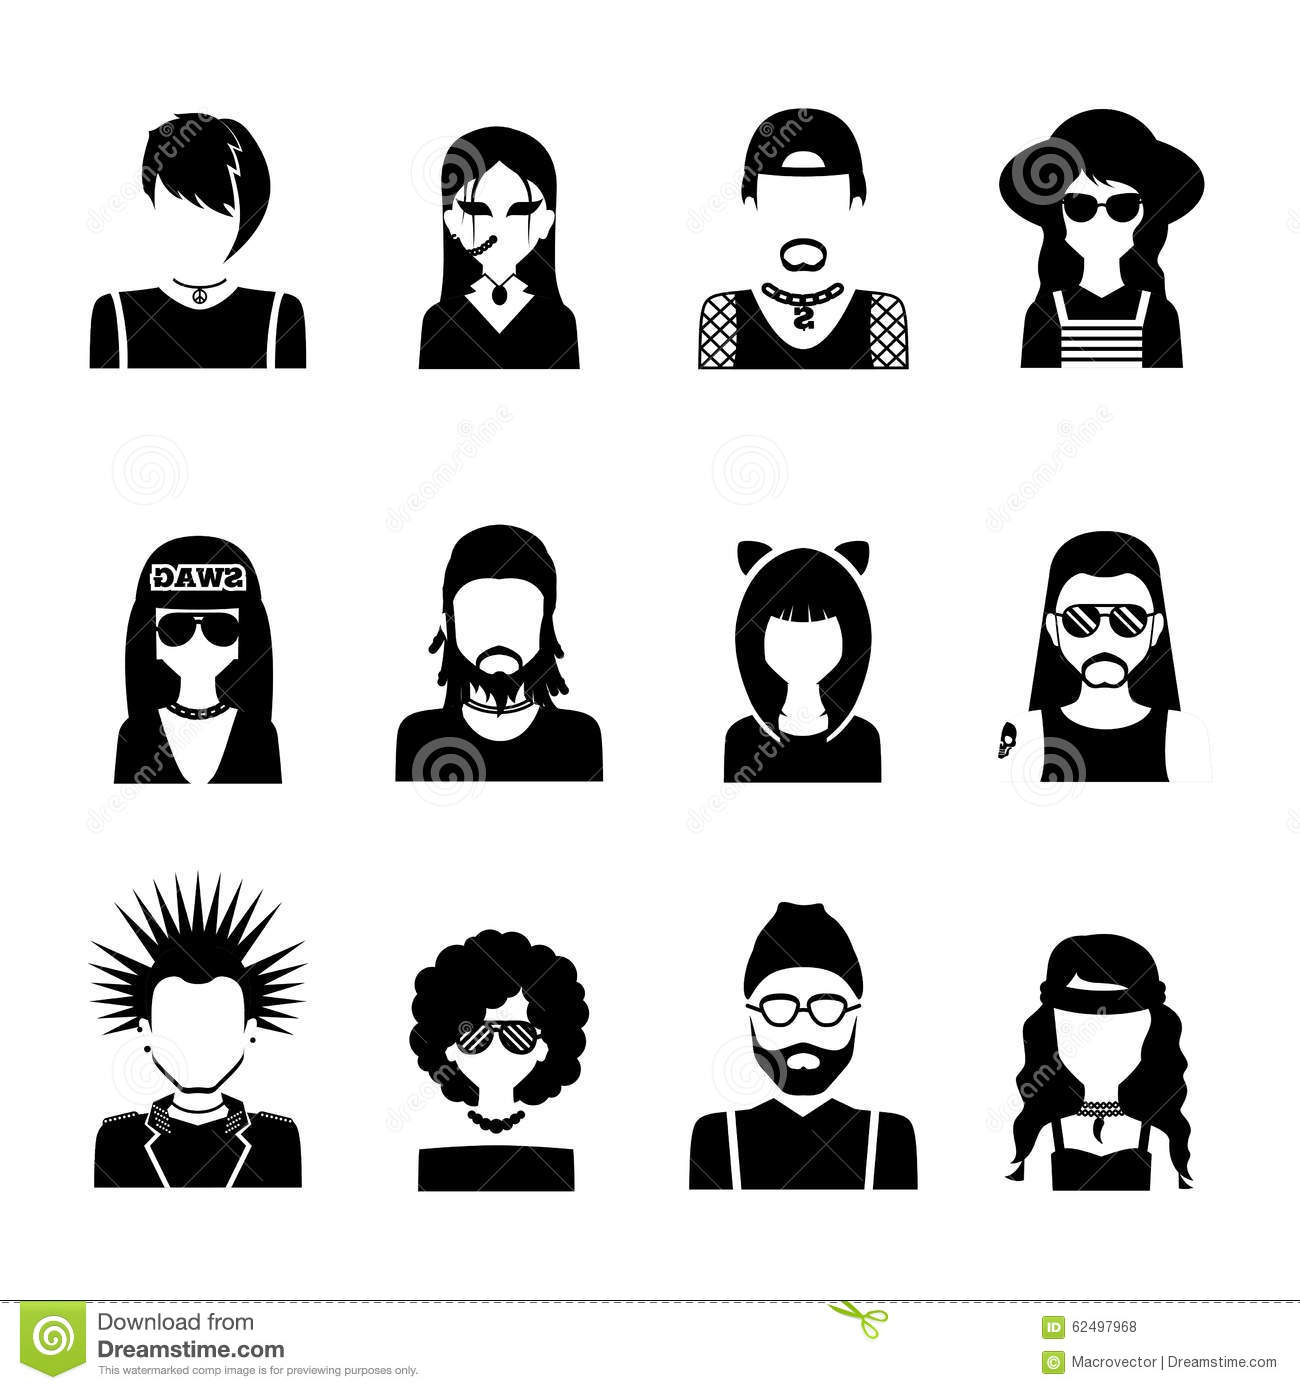 examples of subcultures today